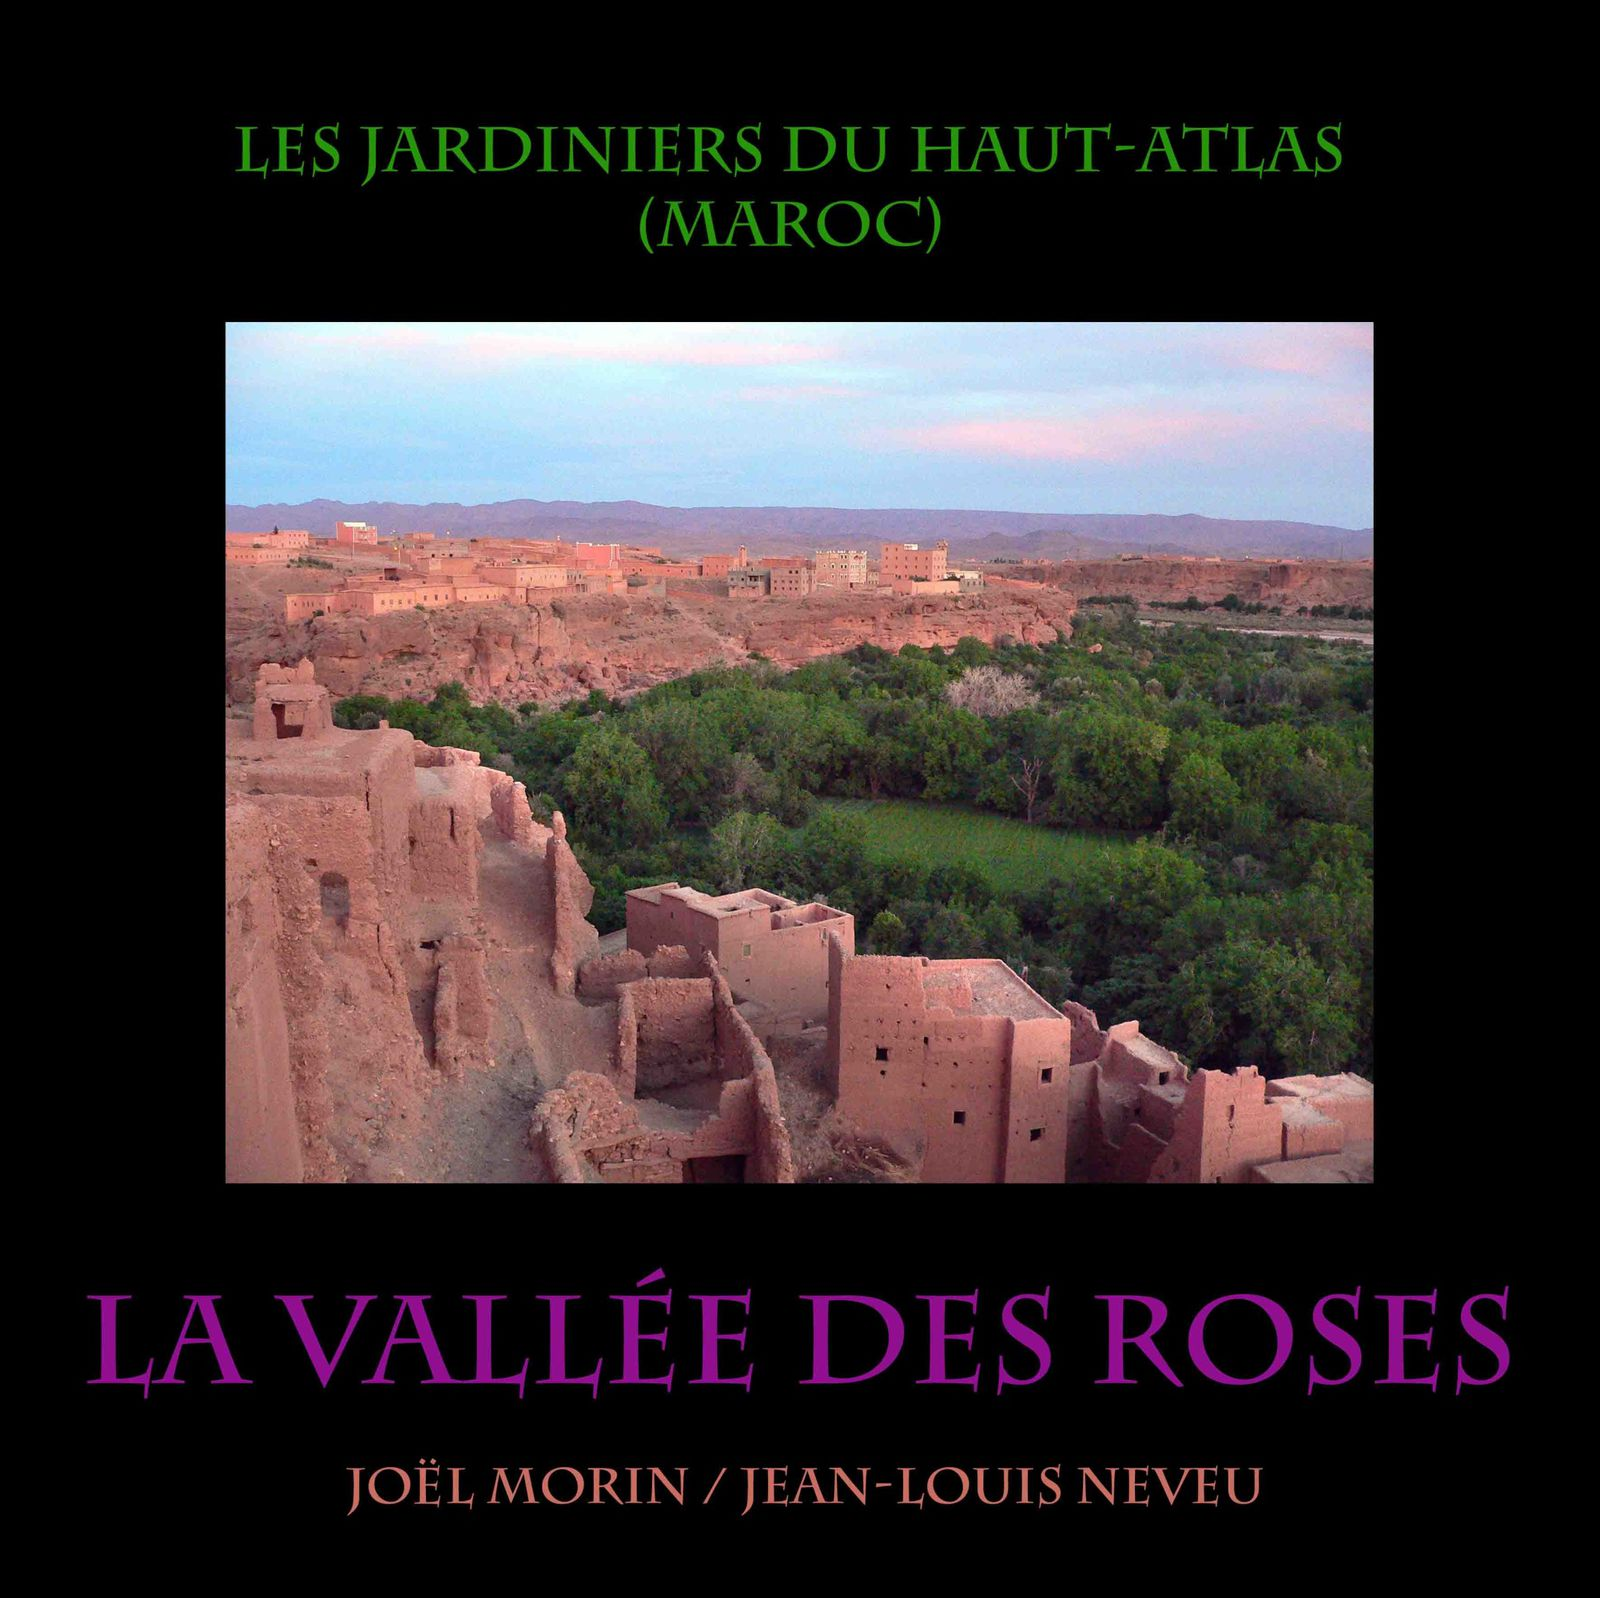 les jardiniers dans la vall e des roses 2008 le blog de. Black Bedroom Furniture Sets. Home Design Ideas